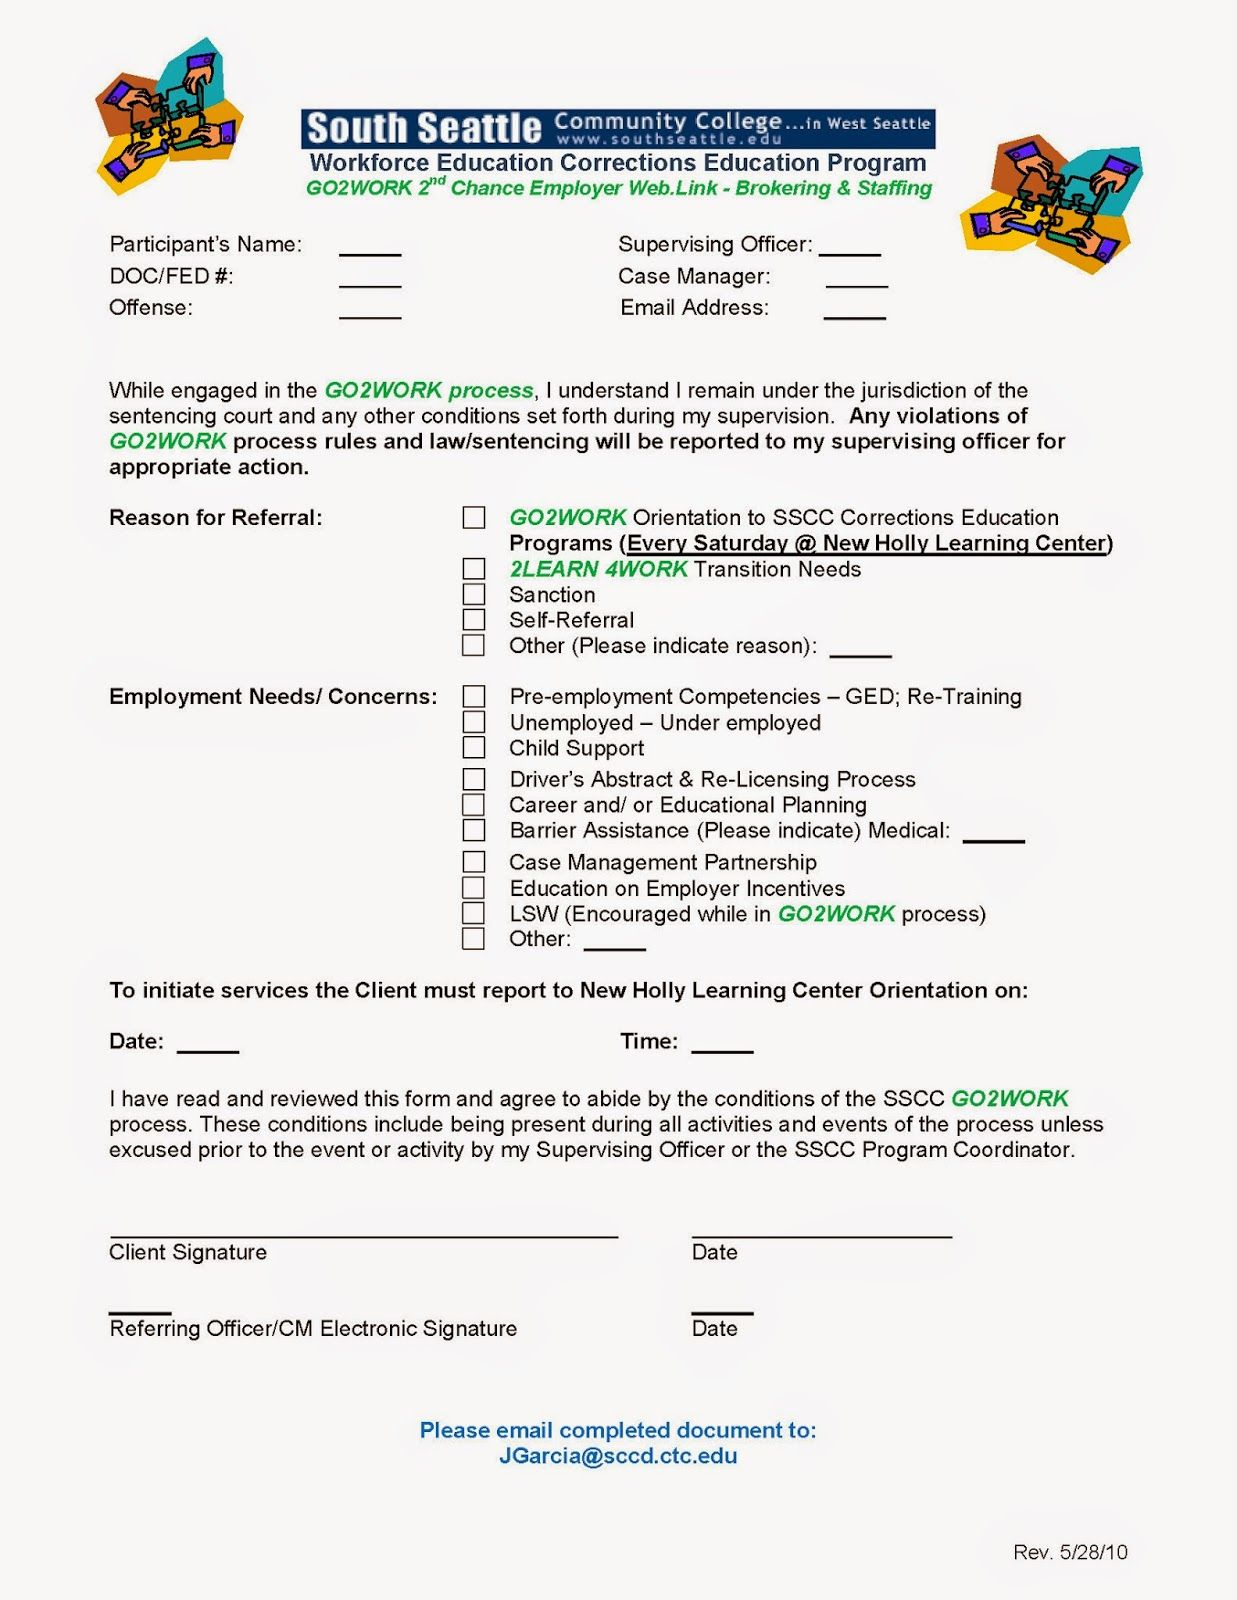 Appointment letter format nepali sample urdu job hcl letters appointment letter format nepali sample urdu job hcl letters accepting employee thecheapjerseys Image collections